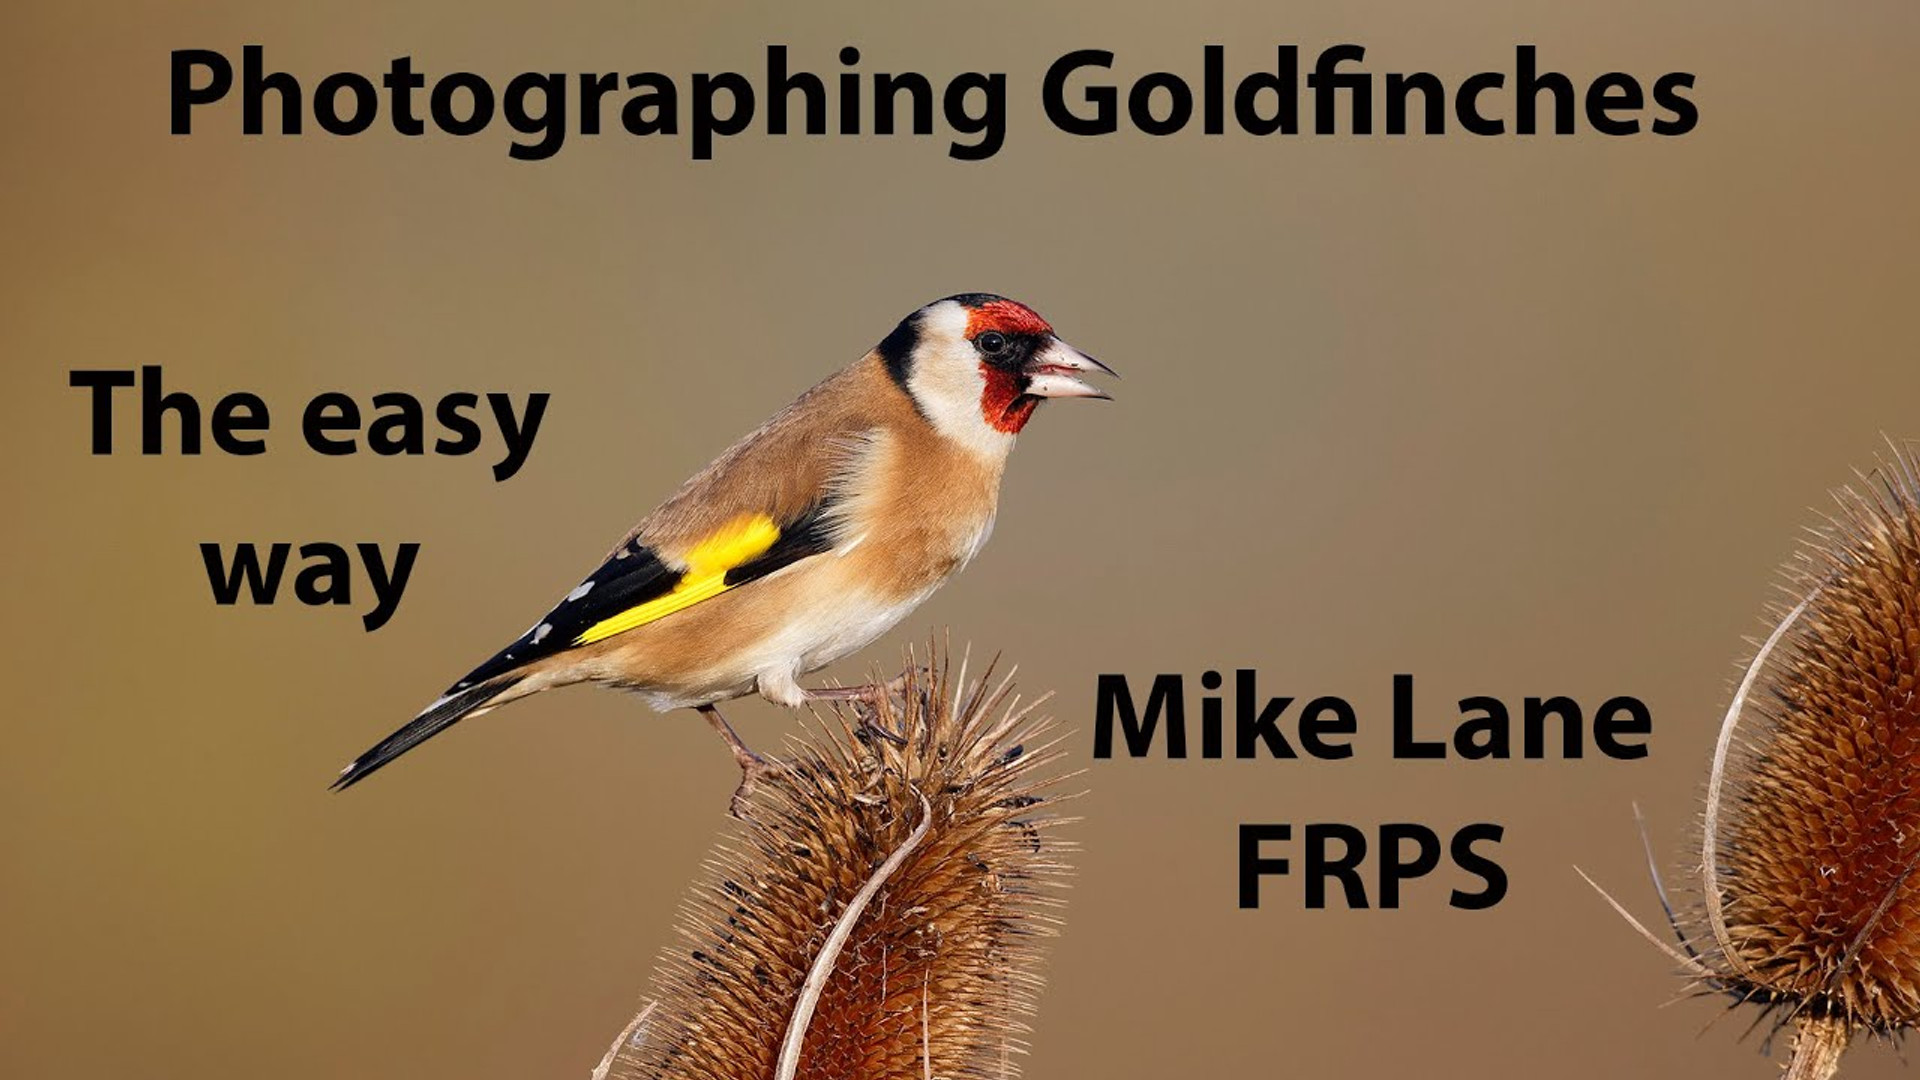 Photographing Goldfinches